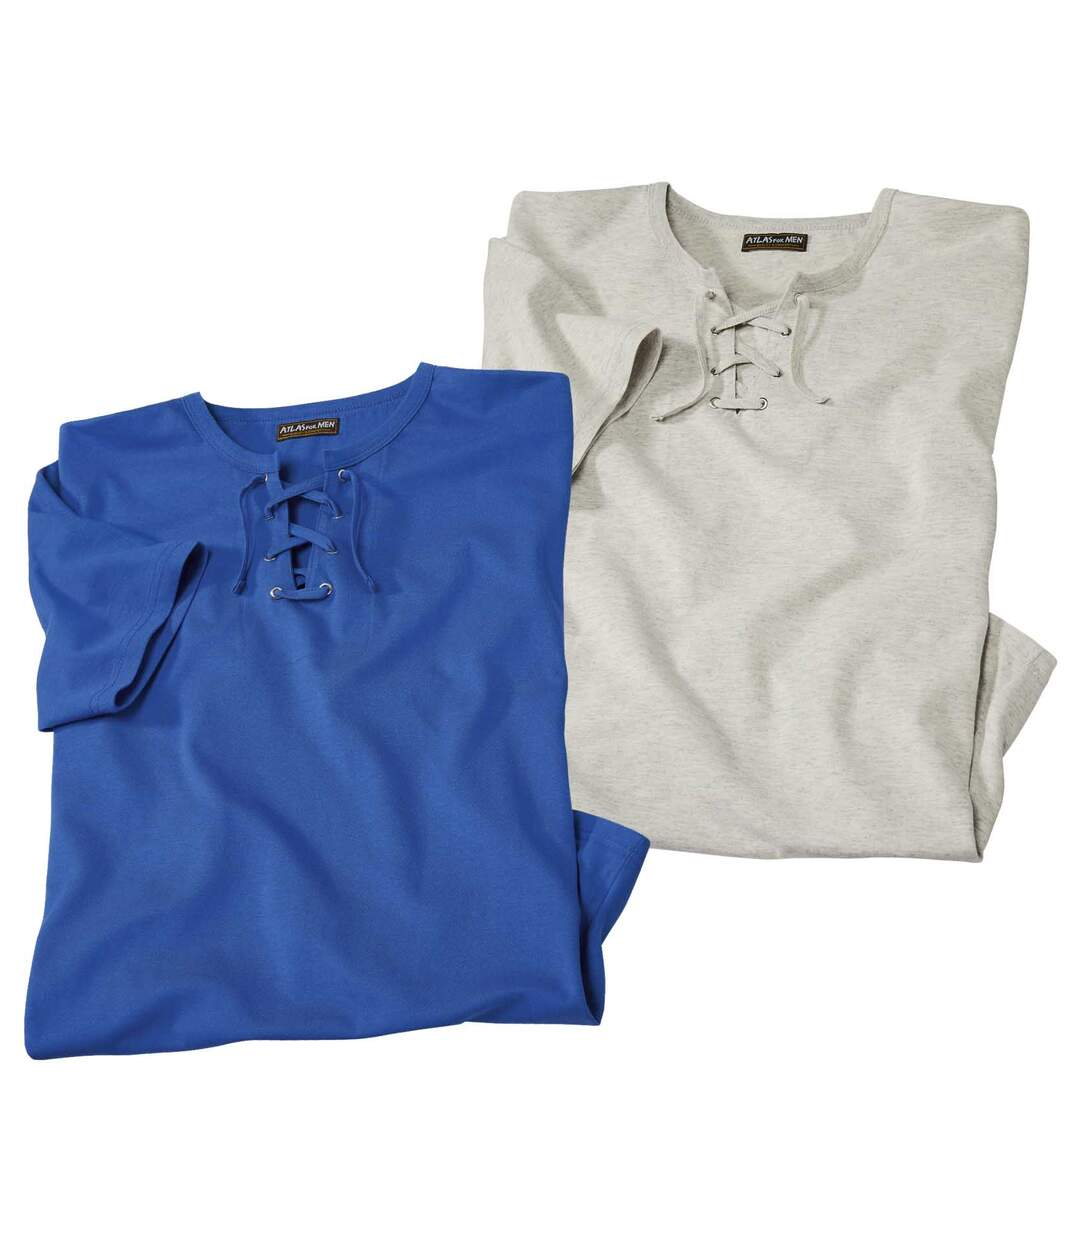 Pack of 2 Men's Lace-Up Neck T-Shirts - Ecru Blue